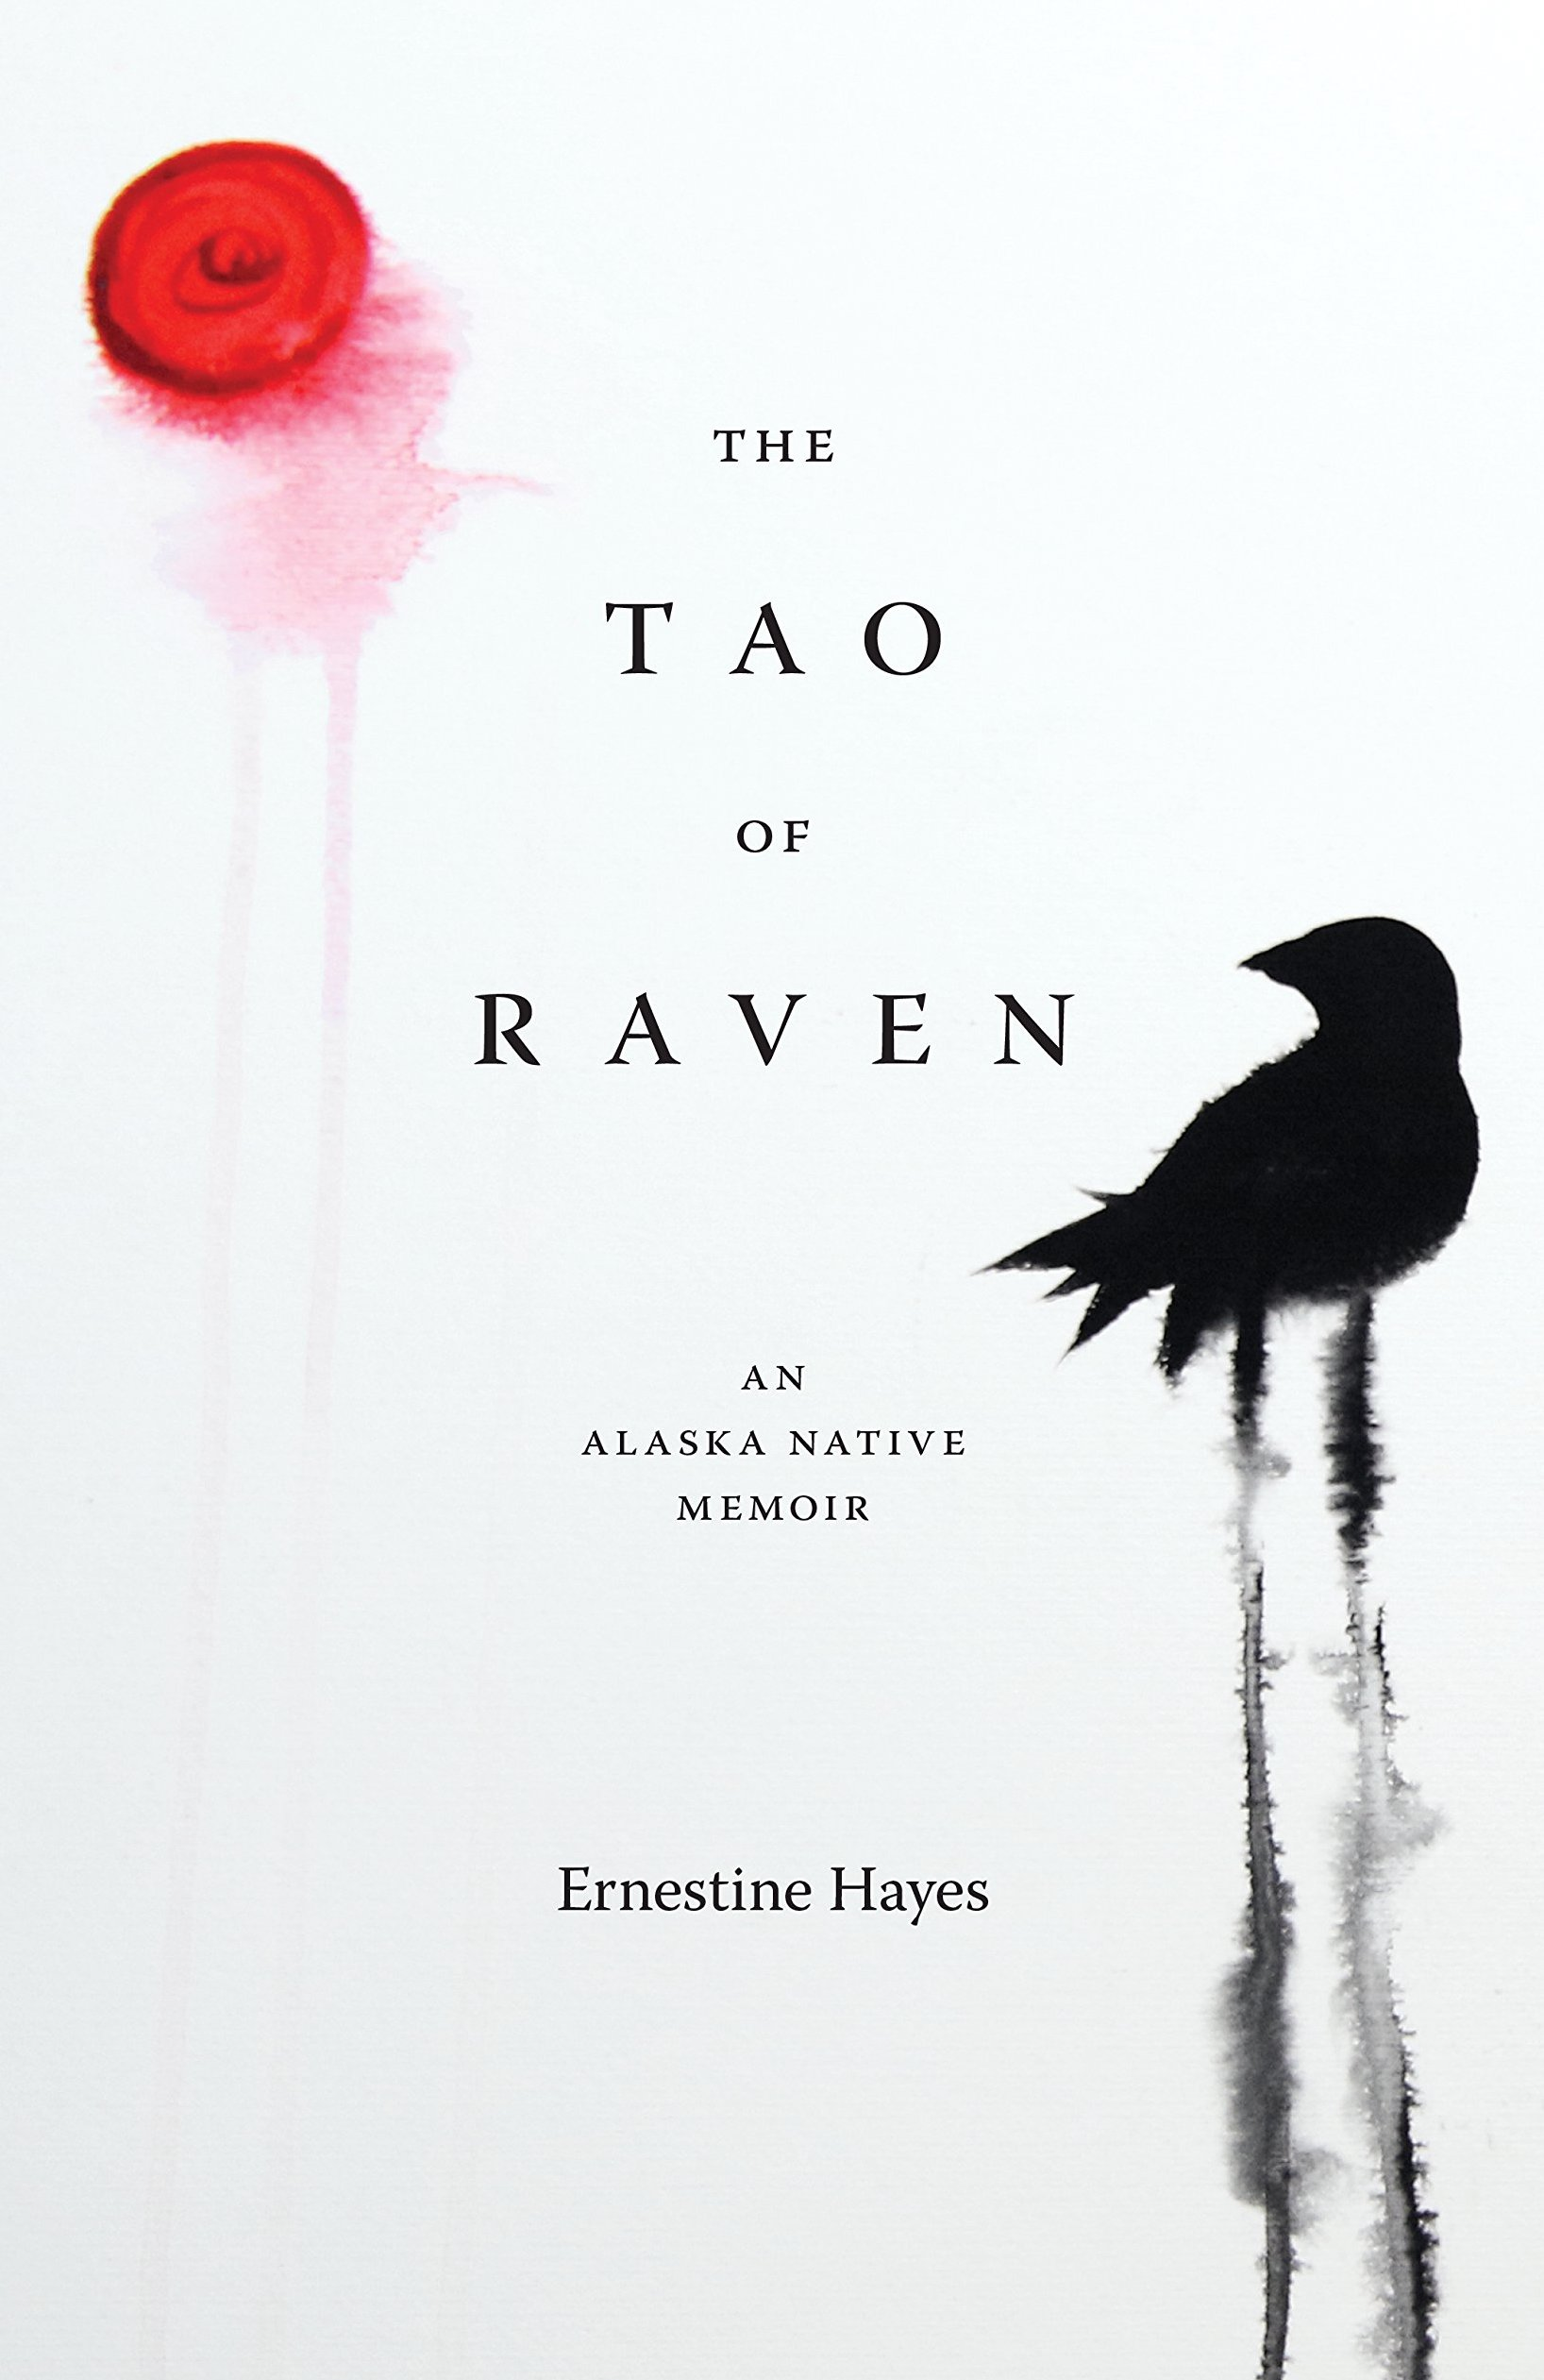 Books By Native Authors - The Tao of Raven by Ernestine Hayes